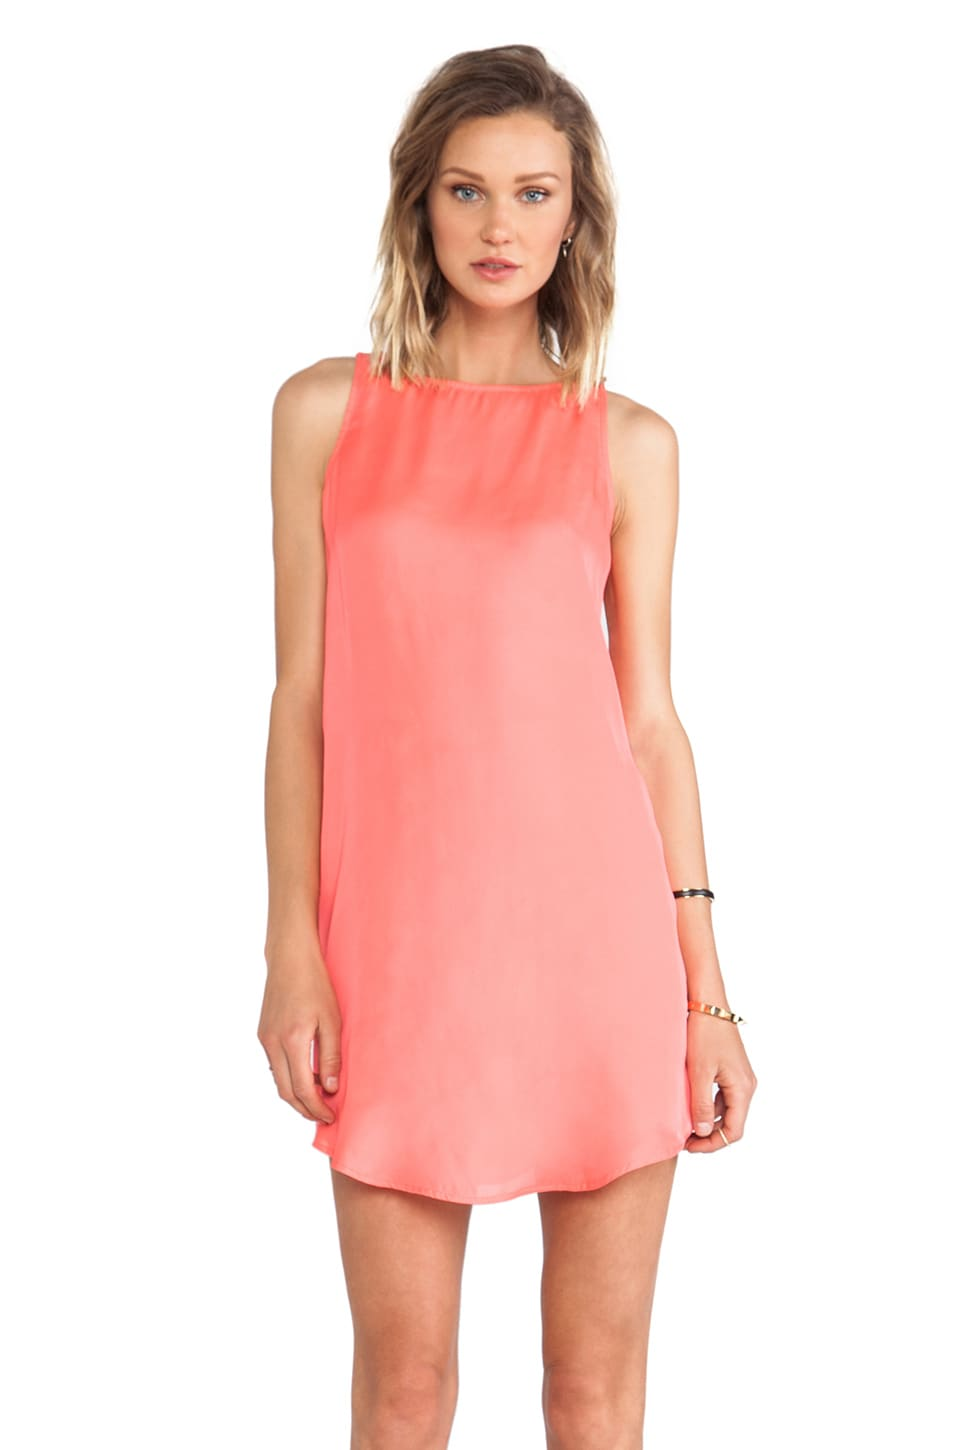 BB Dakota Dahlin Mini Tank Dress in Juice